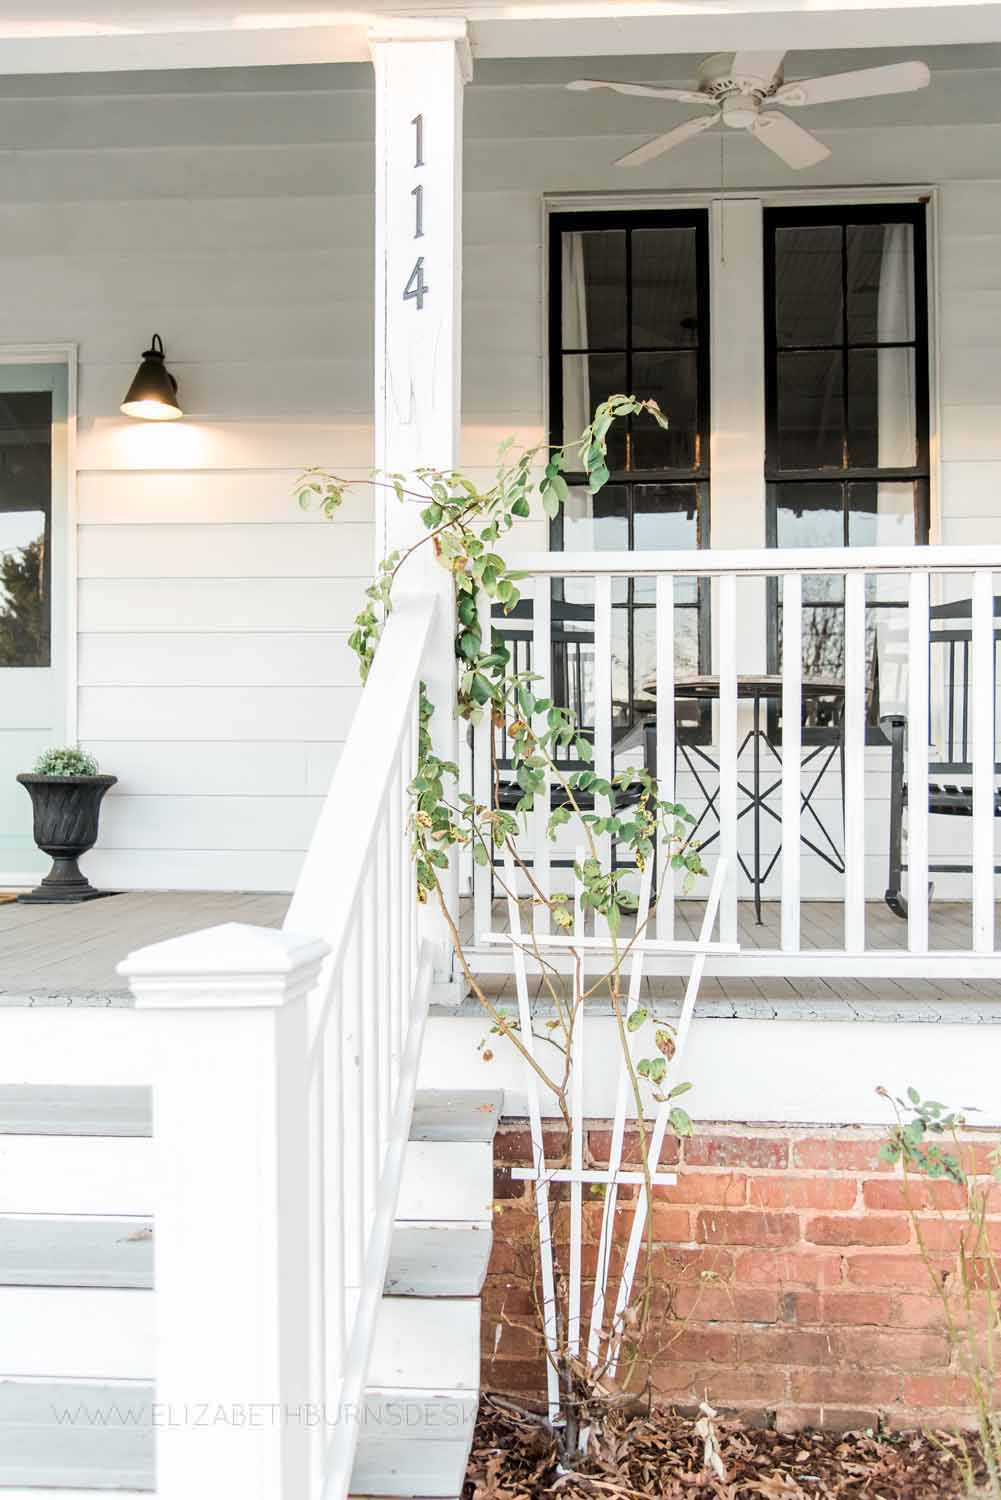 Elizabeth Burns Design Raleigh Interior Designer  Farmhouse Fixer Upper Cottage Renovation, Benjamin Moore Wythe Blue Front Door Front Porch Curb Appeal (6).jpg